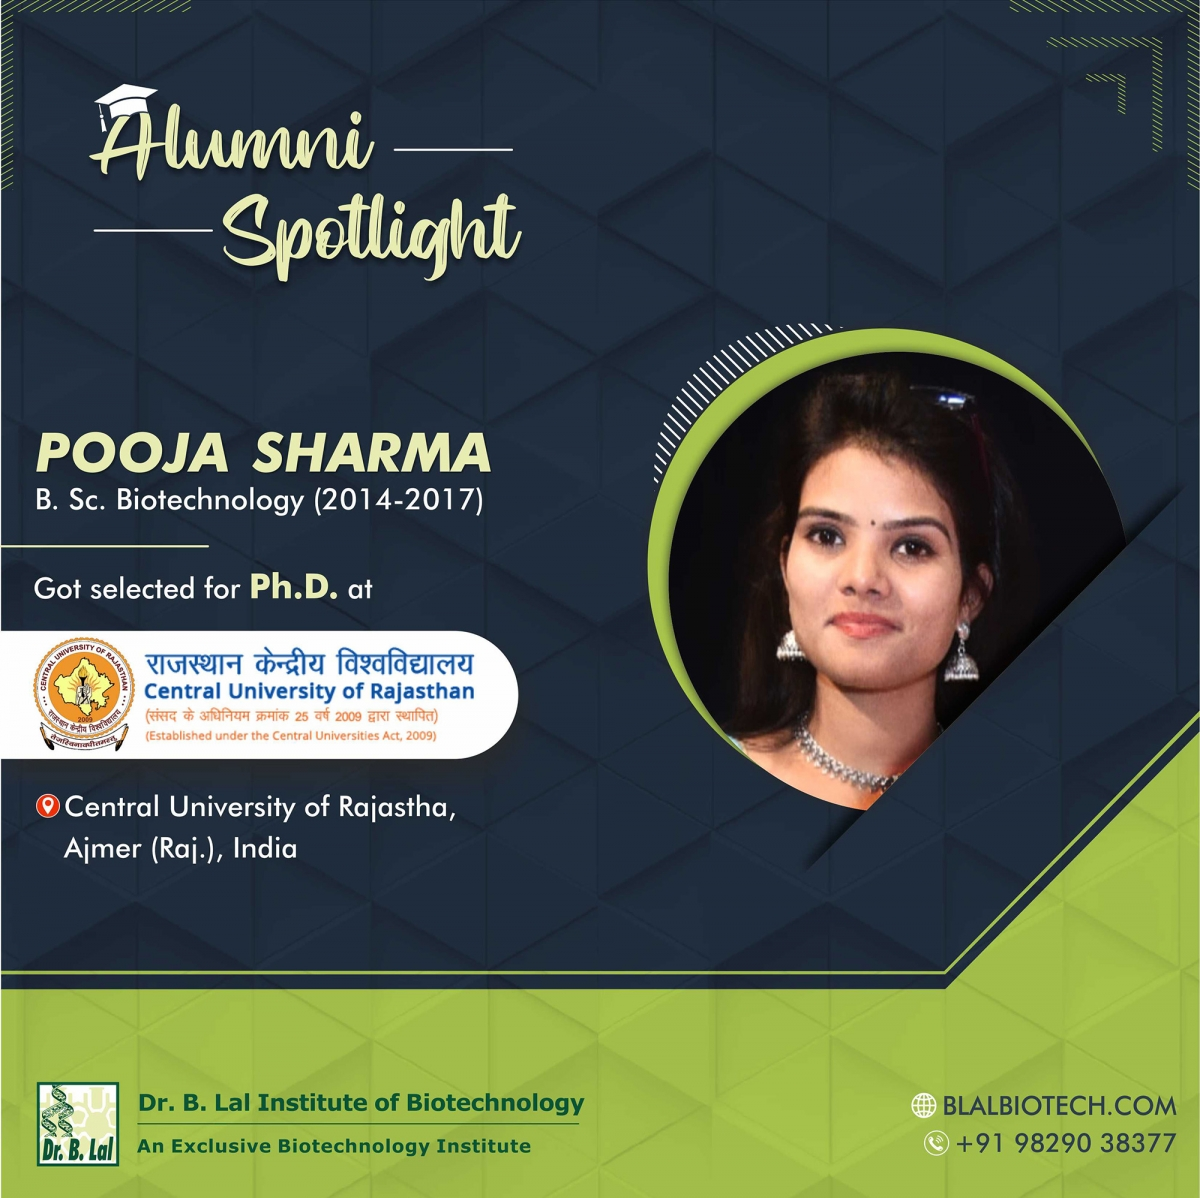 Ms. Pooja Sharma | Selected for Ph.D. at Central University of Rajasthan